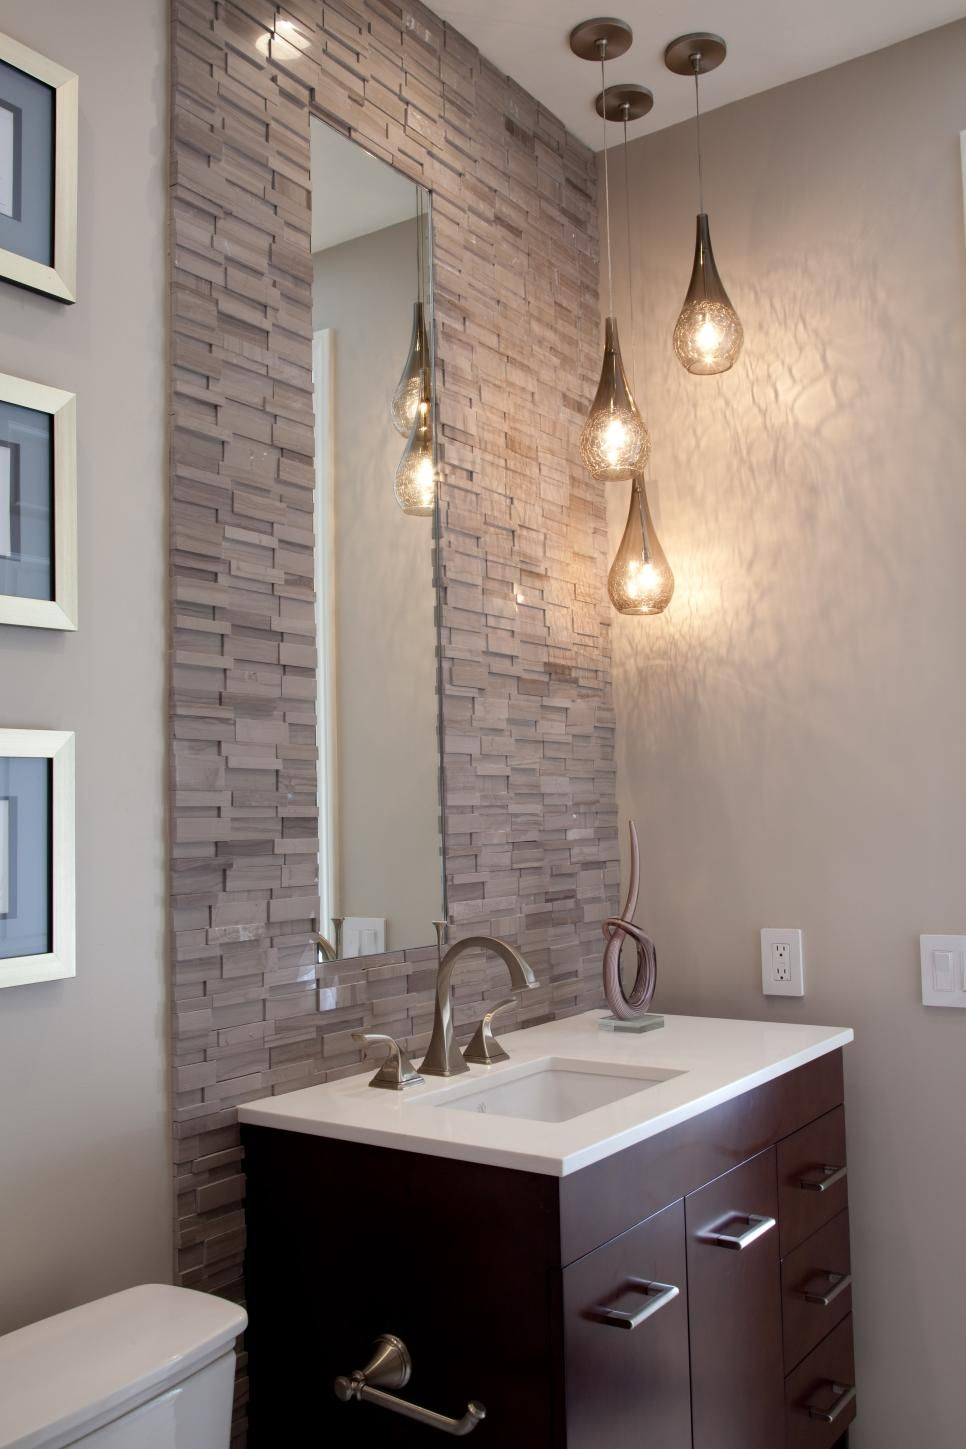 Bathroom Design Trend Undermount Sinks Transitional Style